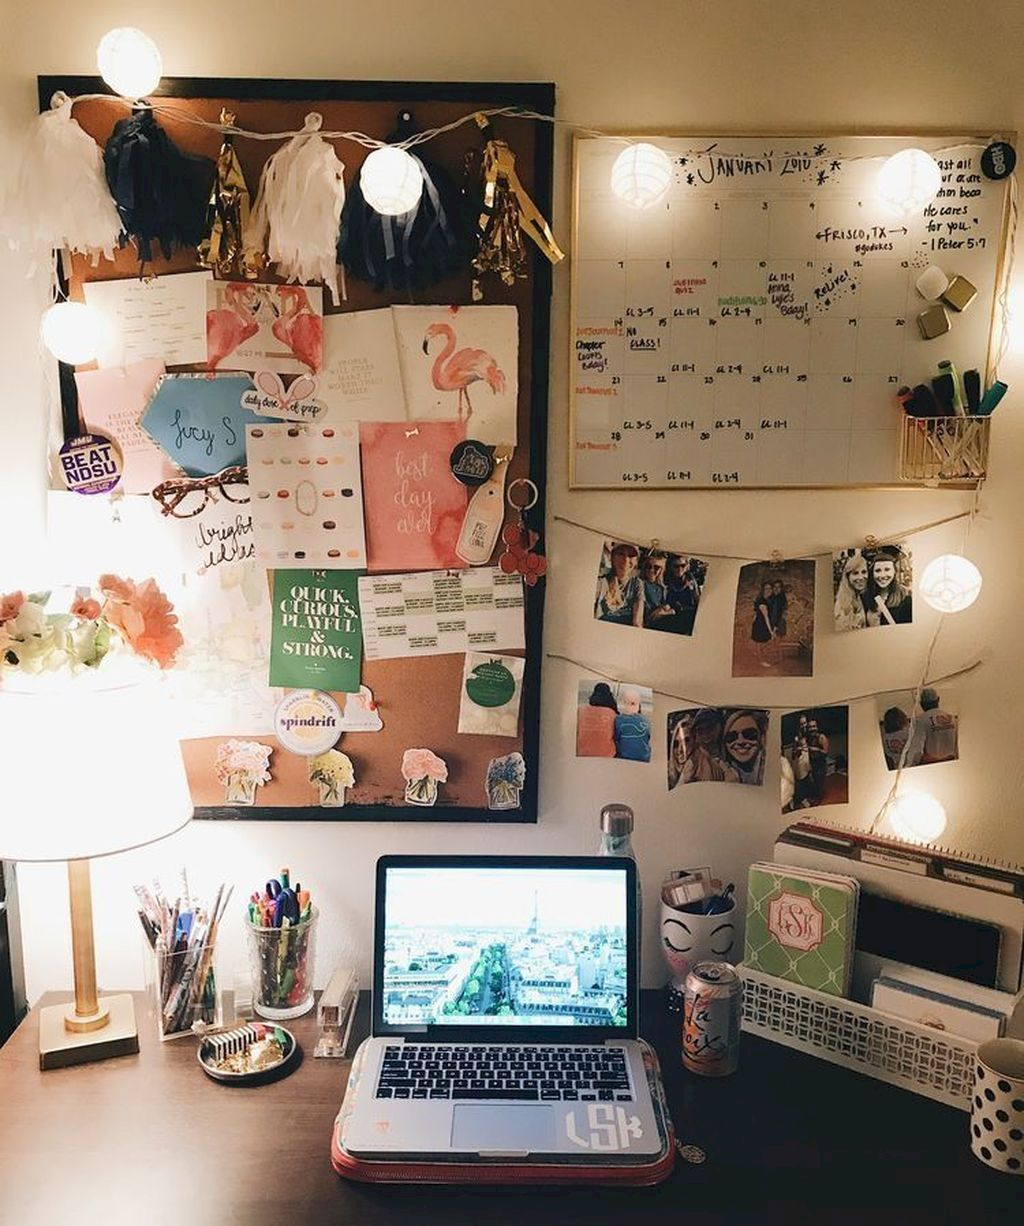 65 Cute Dorm Room Decorating Ideas on A Budget images